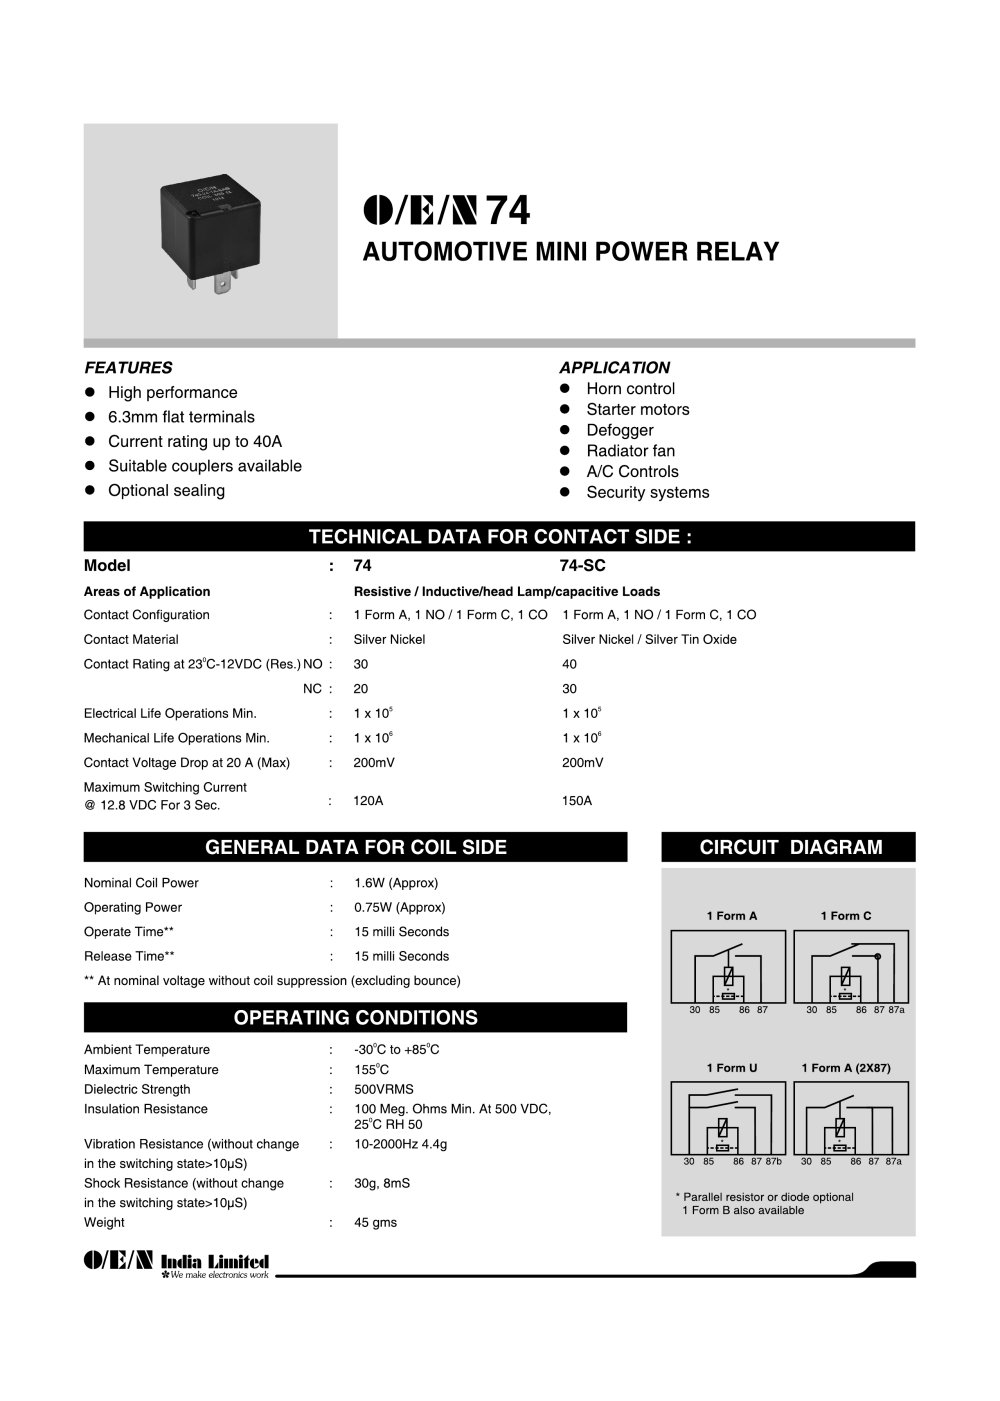 Form C Relay Dpdt Schematic Symbol Telecom Relays Series 74 Automotive O E N India Ltd Pdf Catalogue